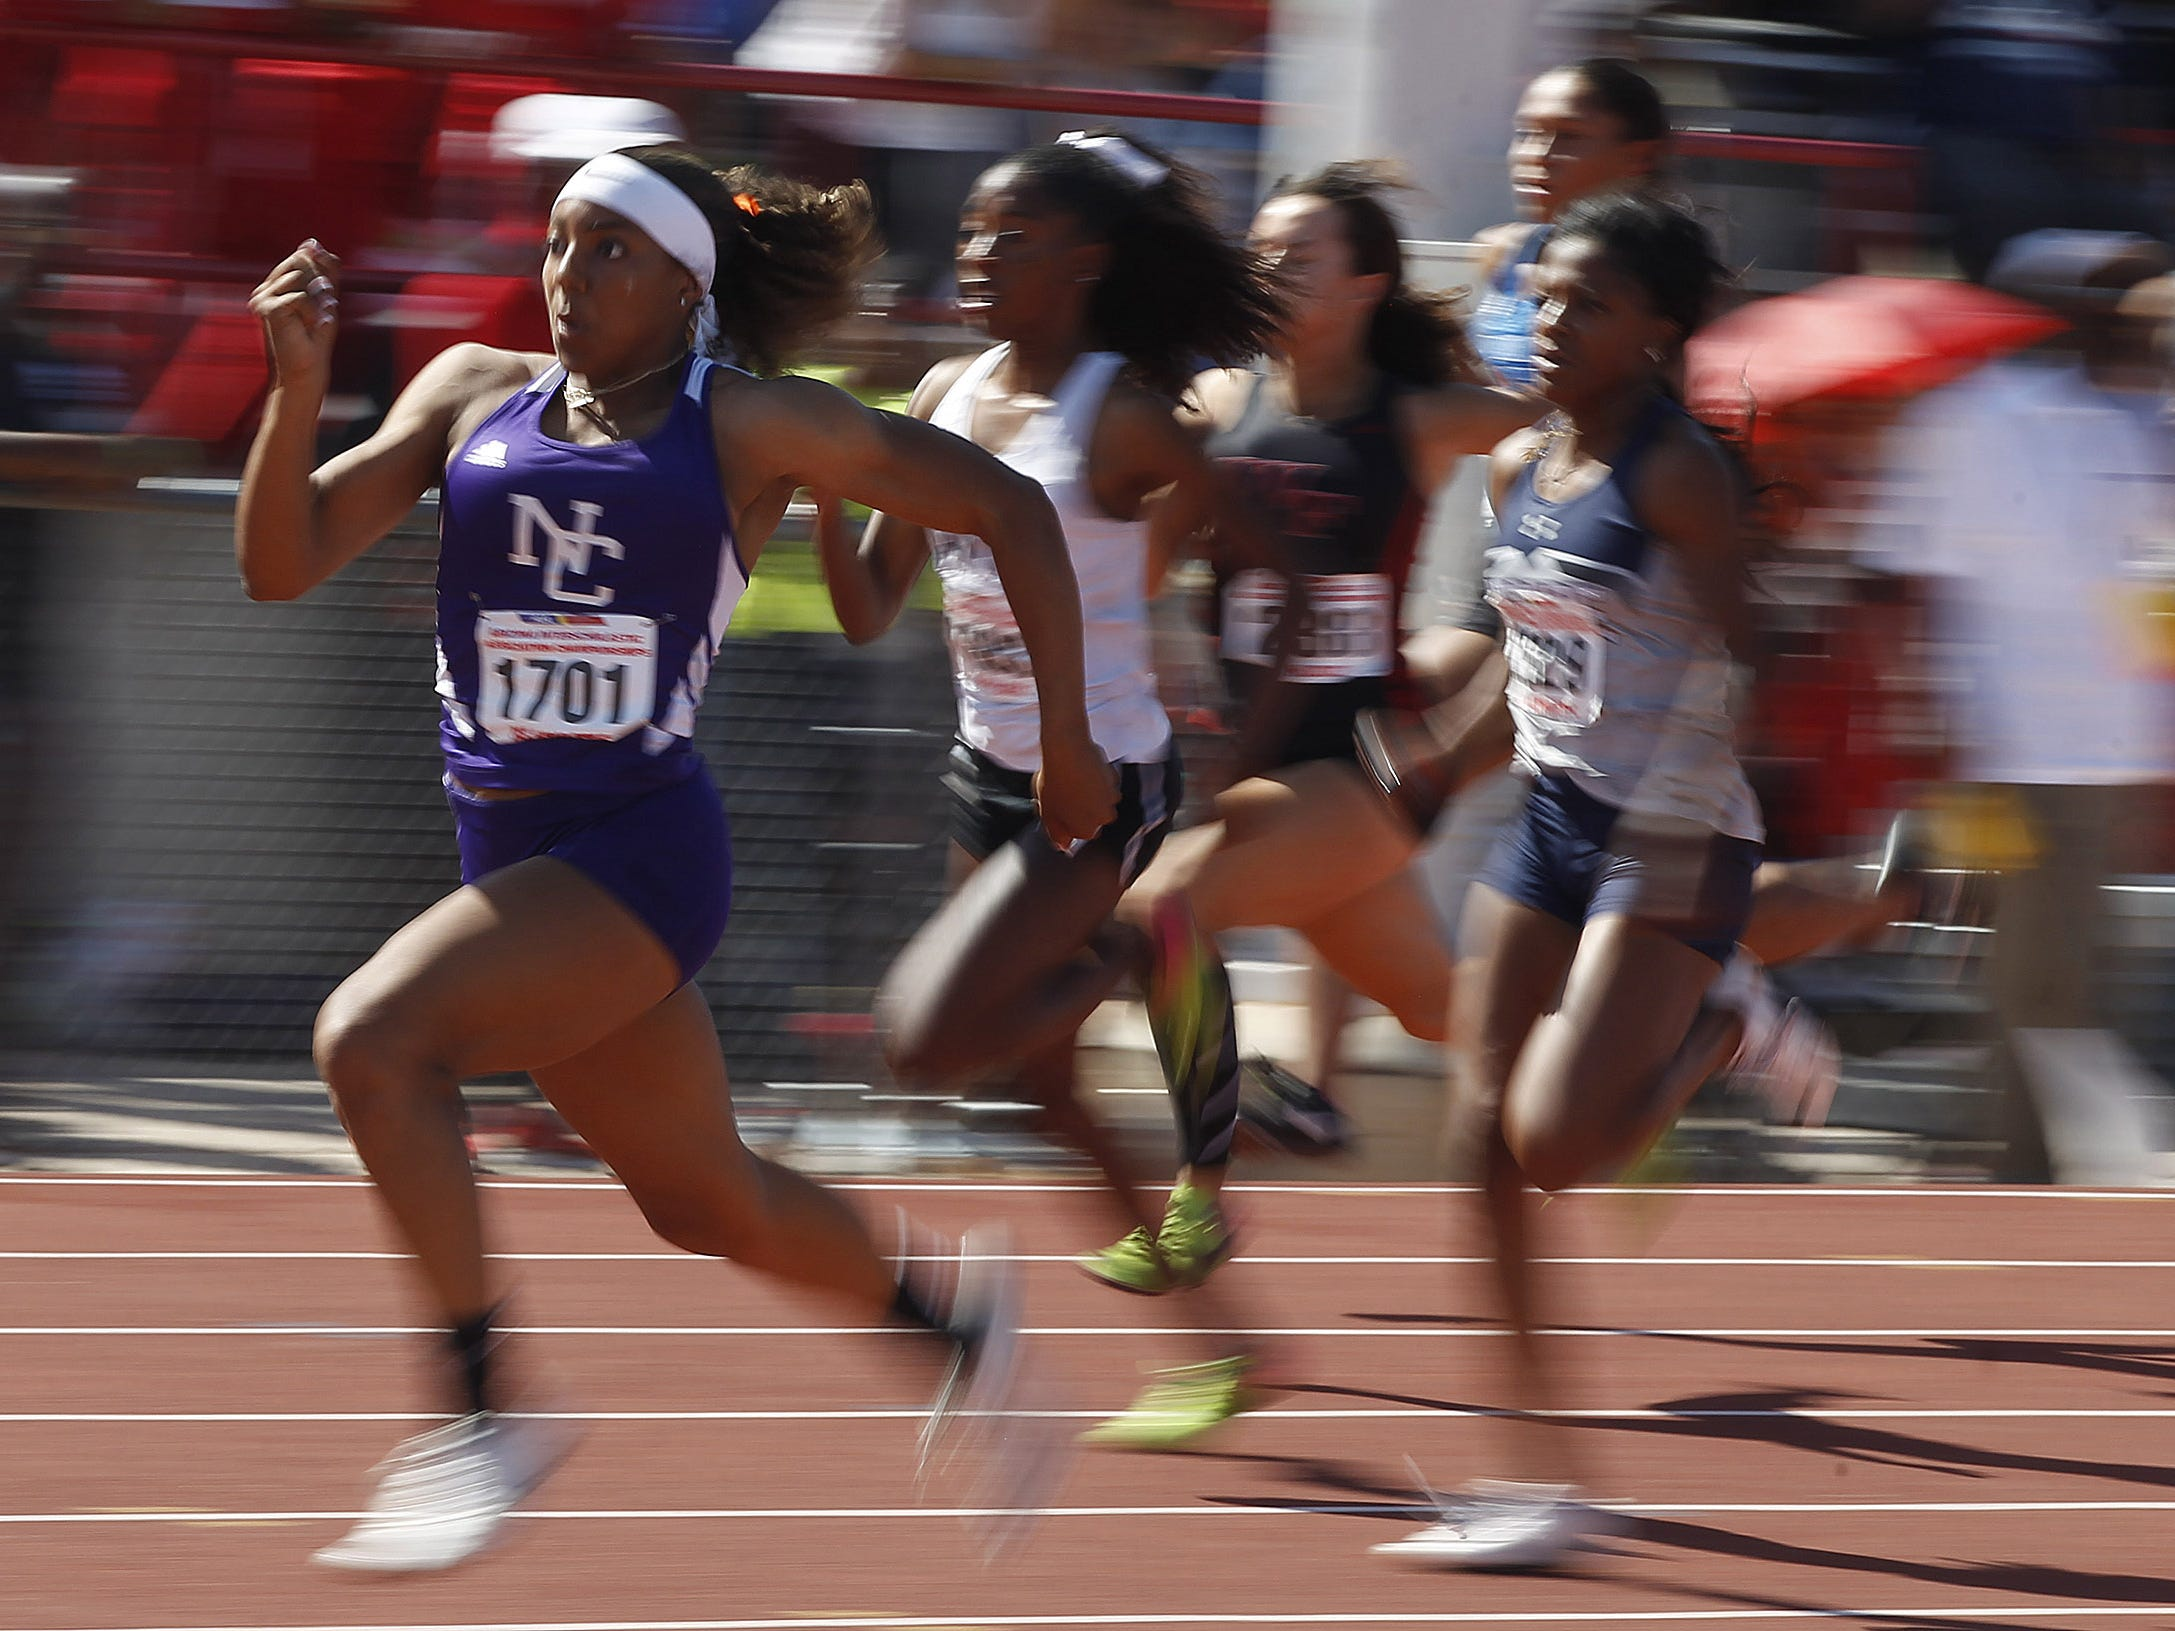 North Canyon's Jadyn Mays sprints away from the pack to win the Division II 100 meters championship during the 2019 Arizona State Track and Field Championship at Mesa Community College in Mesa, Arizona, May 04, 2019.